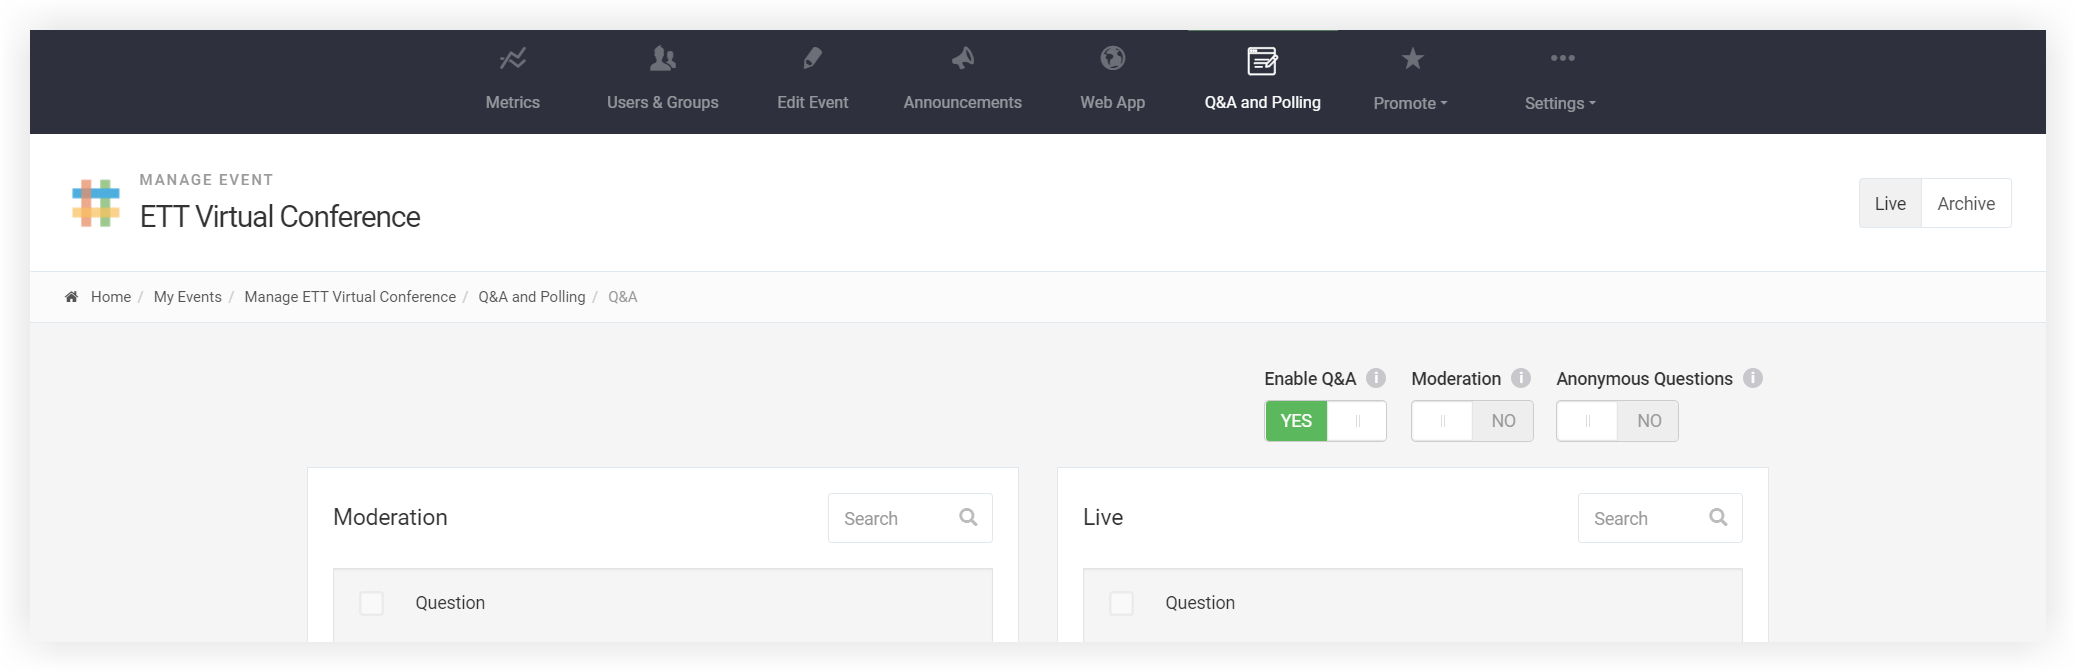 Screenshot of the Q&A and Polling page.